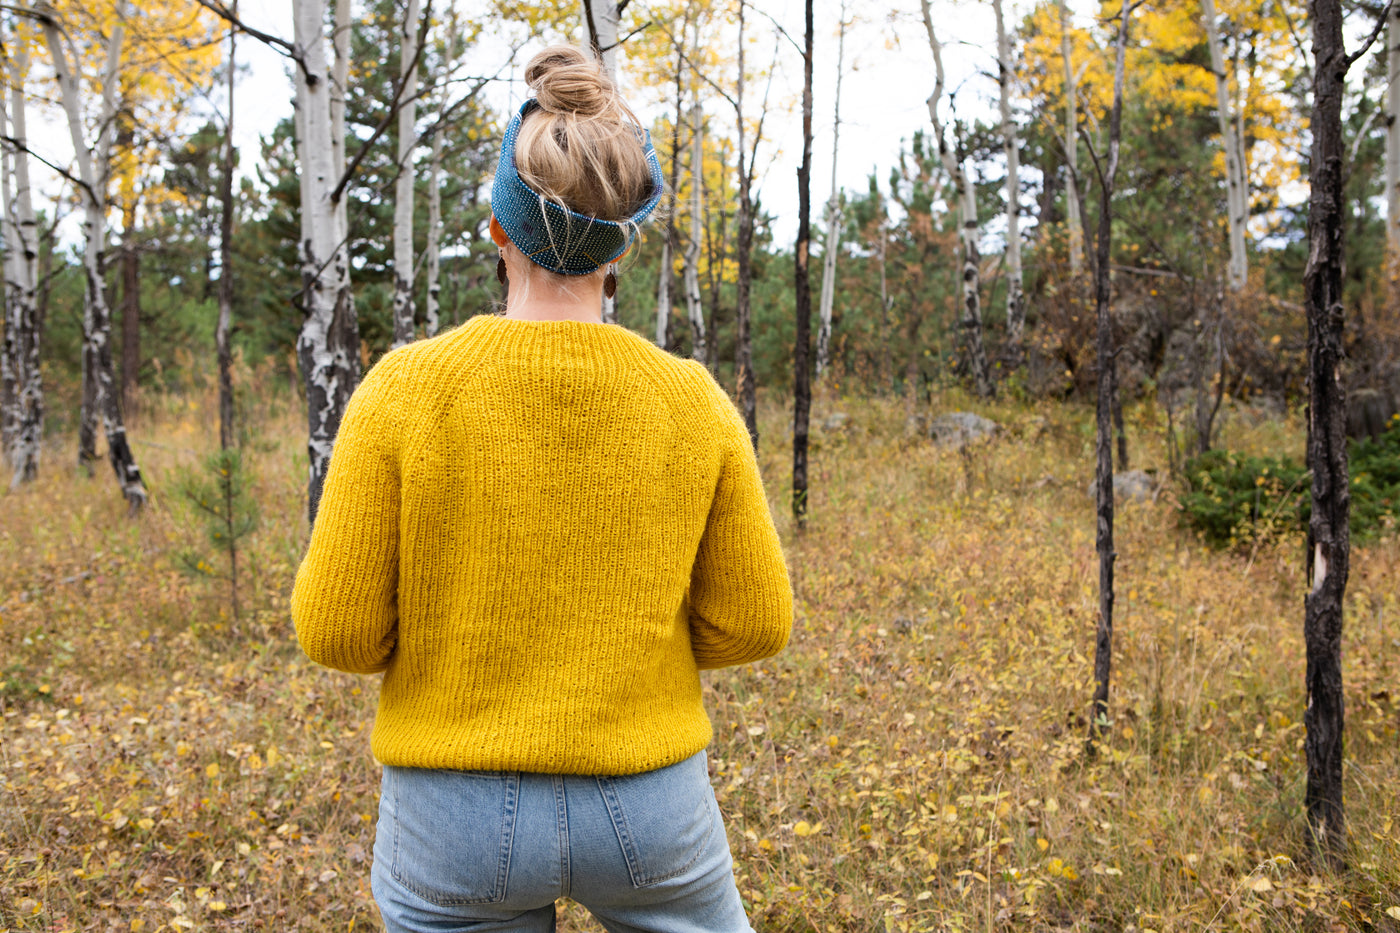 This is a photo of the back view of Amber's yellow sweater.